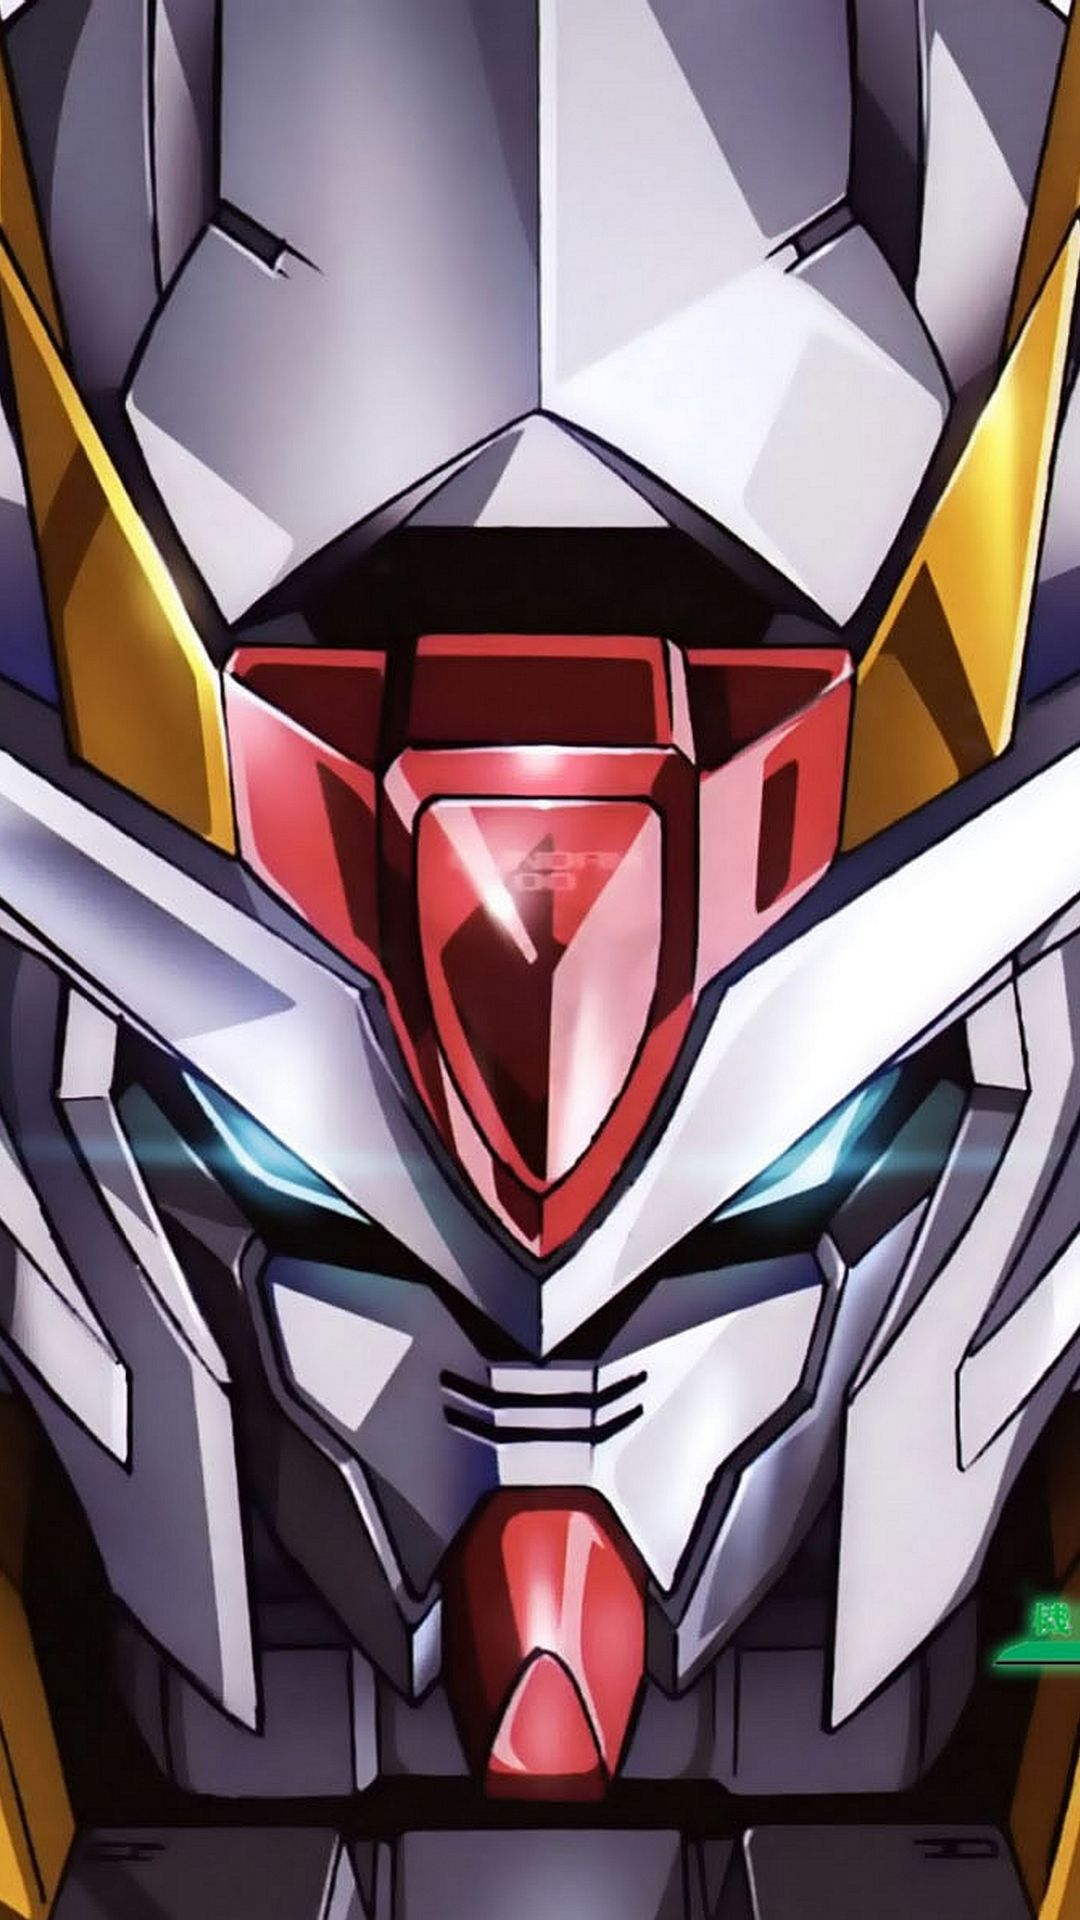 Iphone 5 Anime Gundam Wallpaper Id Gundam Wallpapers Gundam Art Gundam